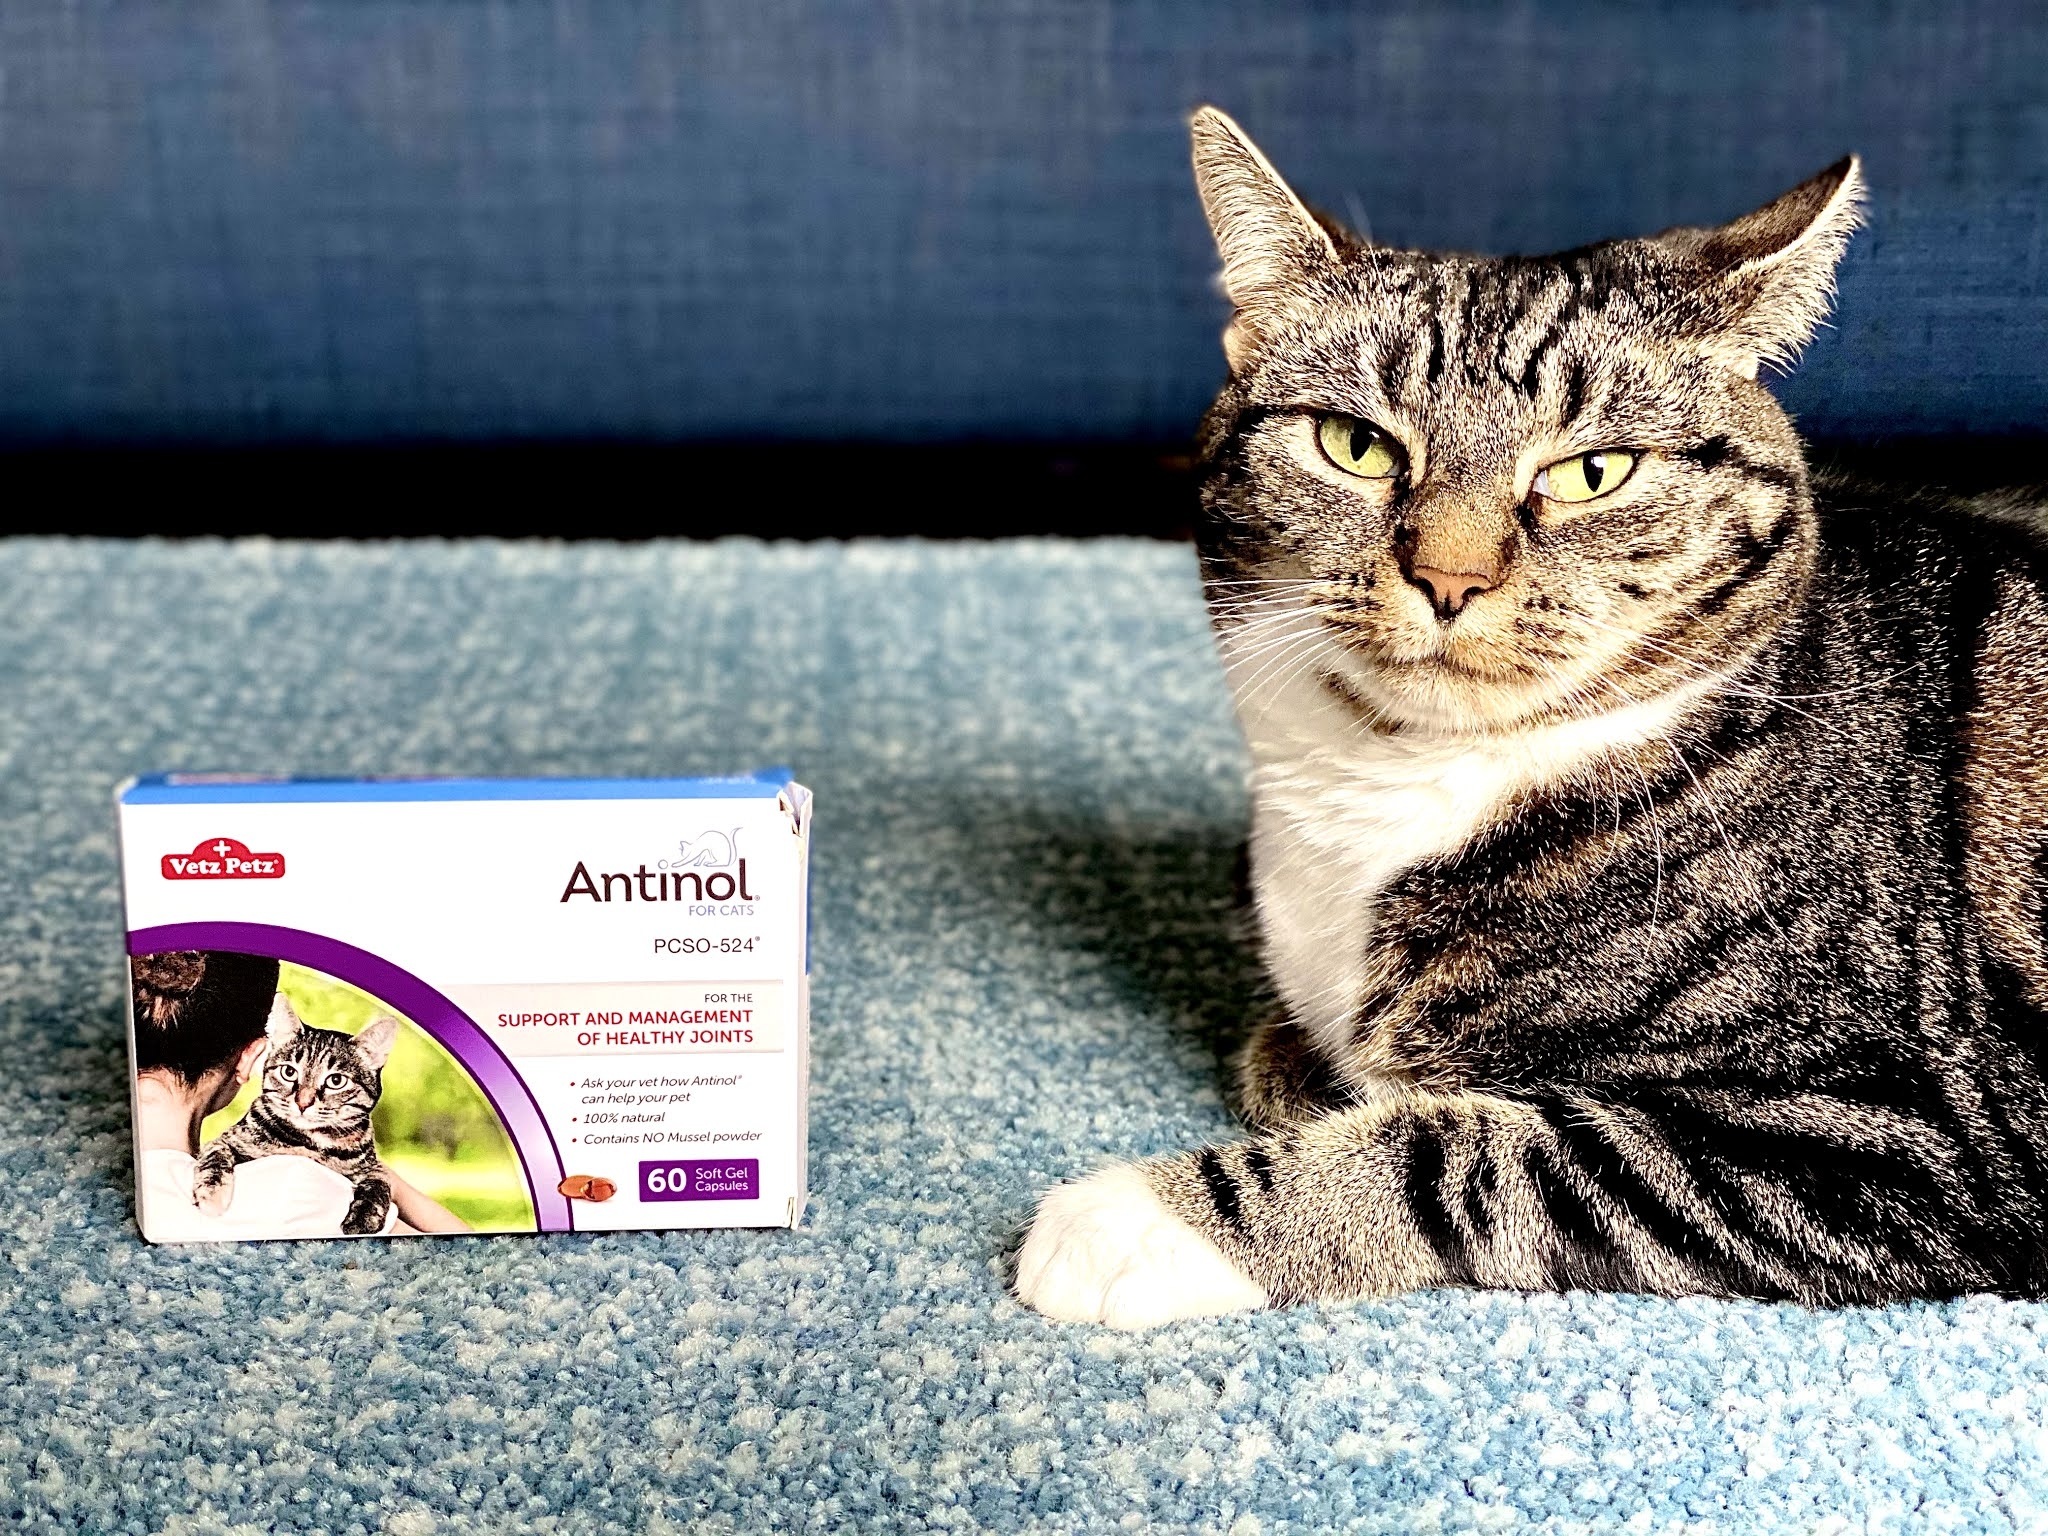 A tabby cat sitting on a blue rug next to a box of Antinol for increased mobility for cats and dogs